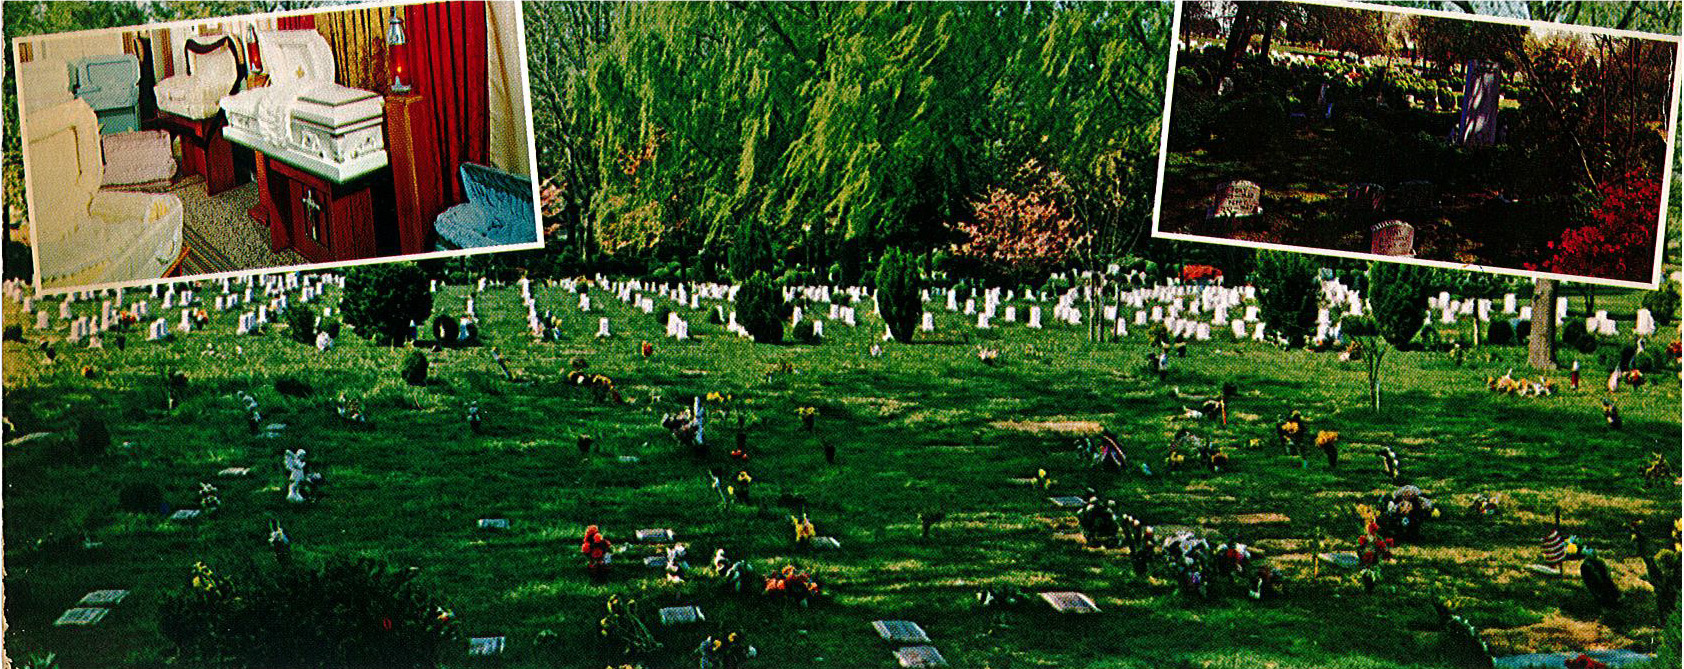 Aspin Hill Pet Cemetery postcard, ca. 1970. Digital image courtesy of the Montgomery County Humane Society